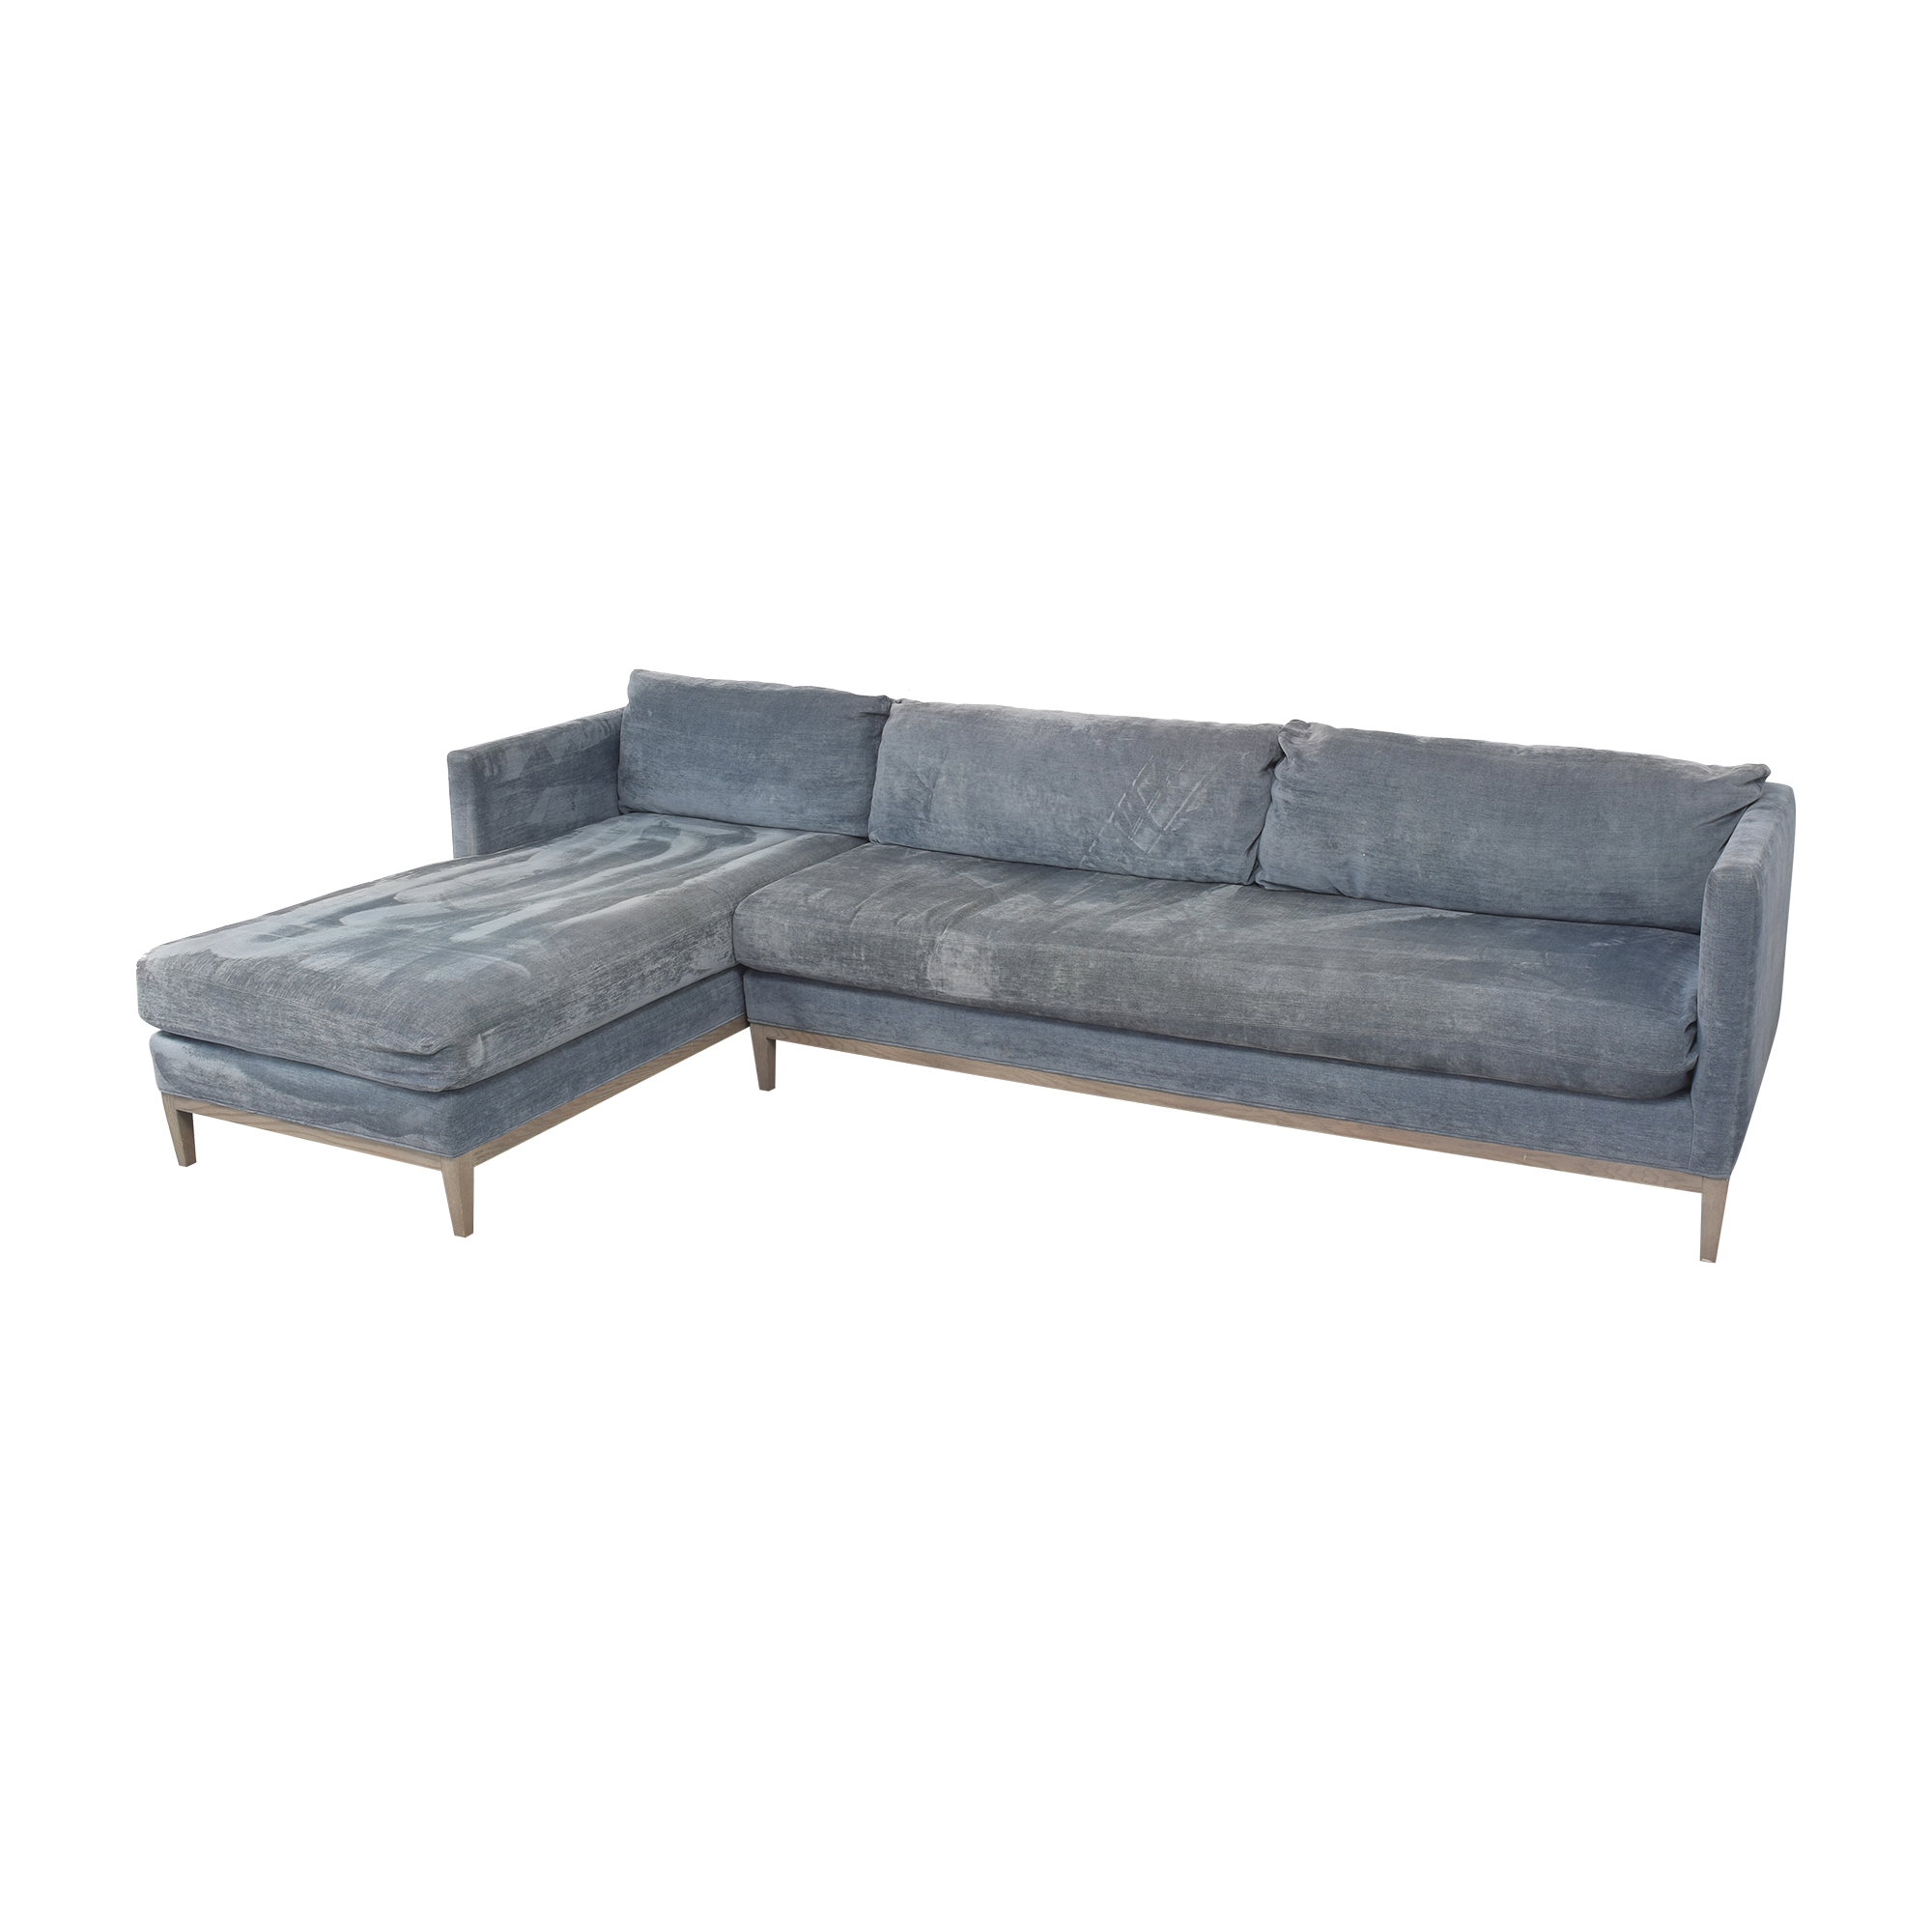 Lee Industries Chaise Sectional Sofa sale